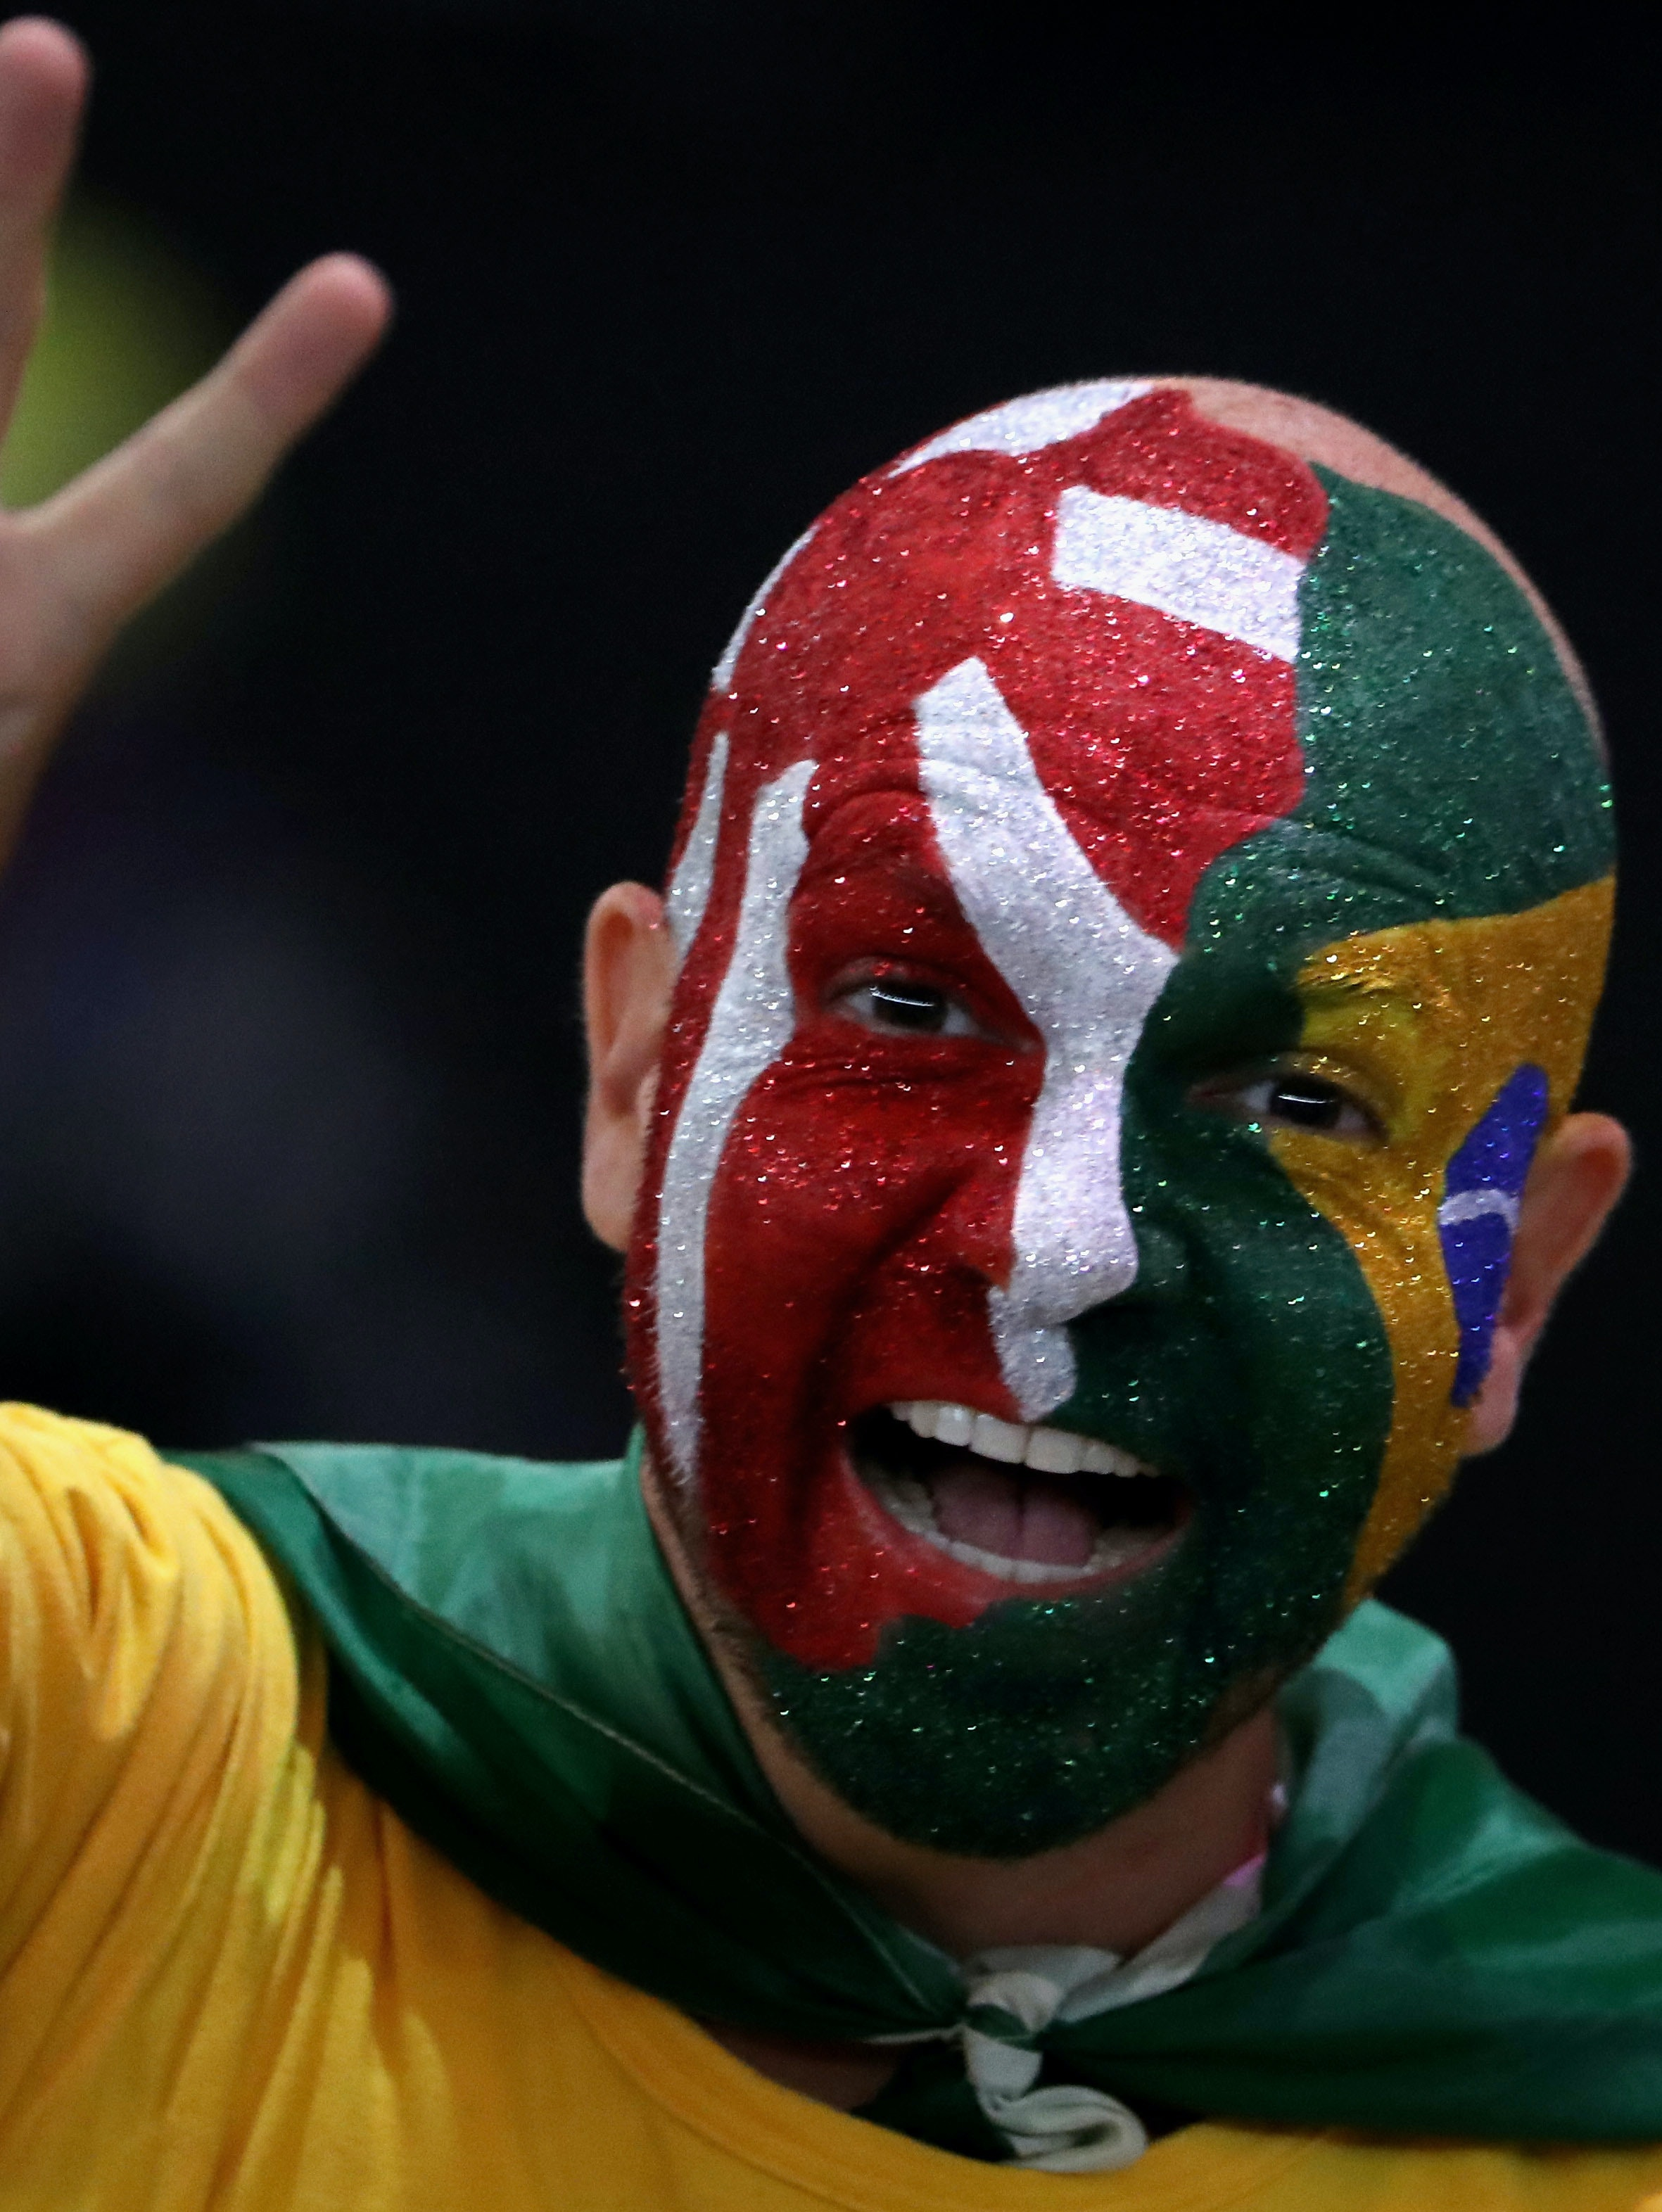 RIO DE JANEIRO, BRAZIL - SEPTEMBER 18:  A fan in the crowd celebrates with face paint representing the flags of Japan and Brazil during the closing ceremony of the Rio 2016 Paralympic Games at Maracana Stadium on September 18, 2016 in Rio de Janeiro, Brazil.  (Photo by Friedemann Vogel/Getty Images)